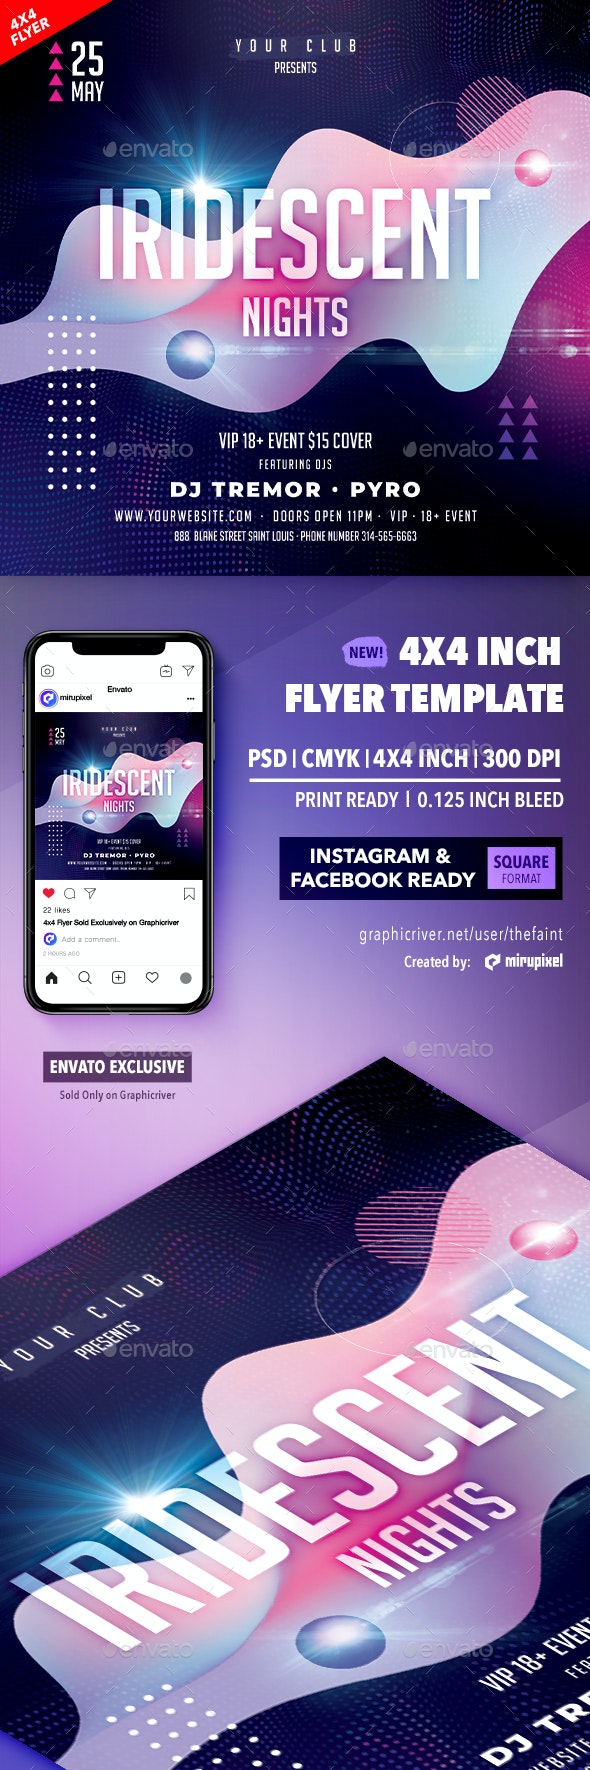 Iridescent Nights 4x4 Inch Flyer Template - Clubs & Parties Events